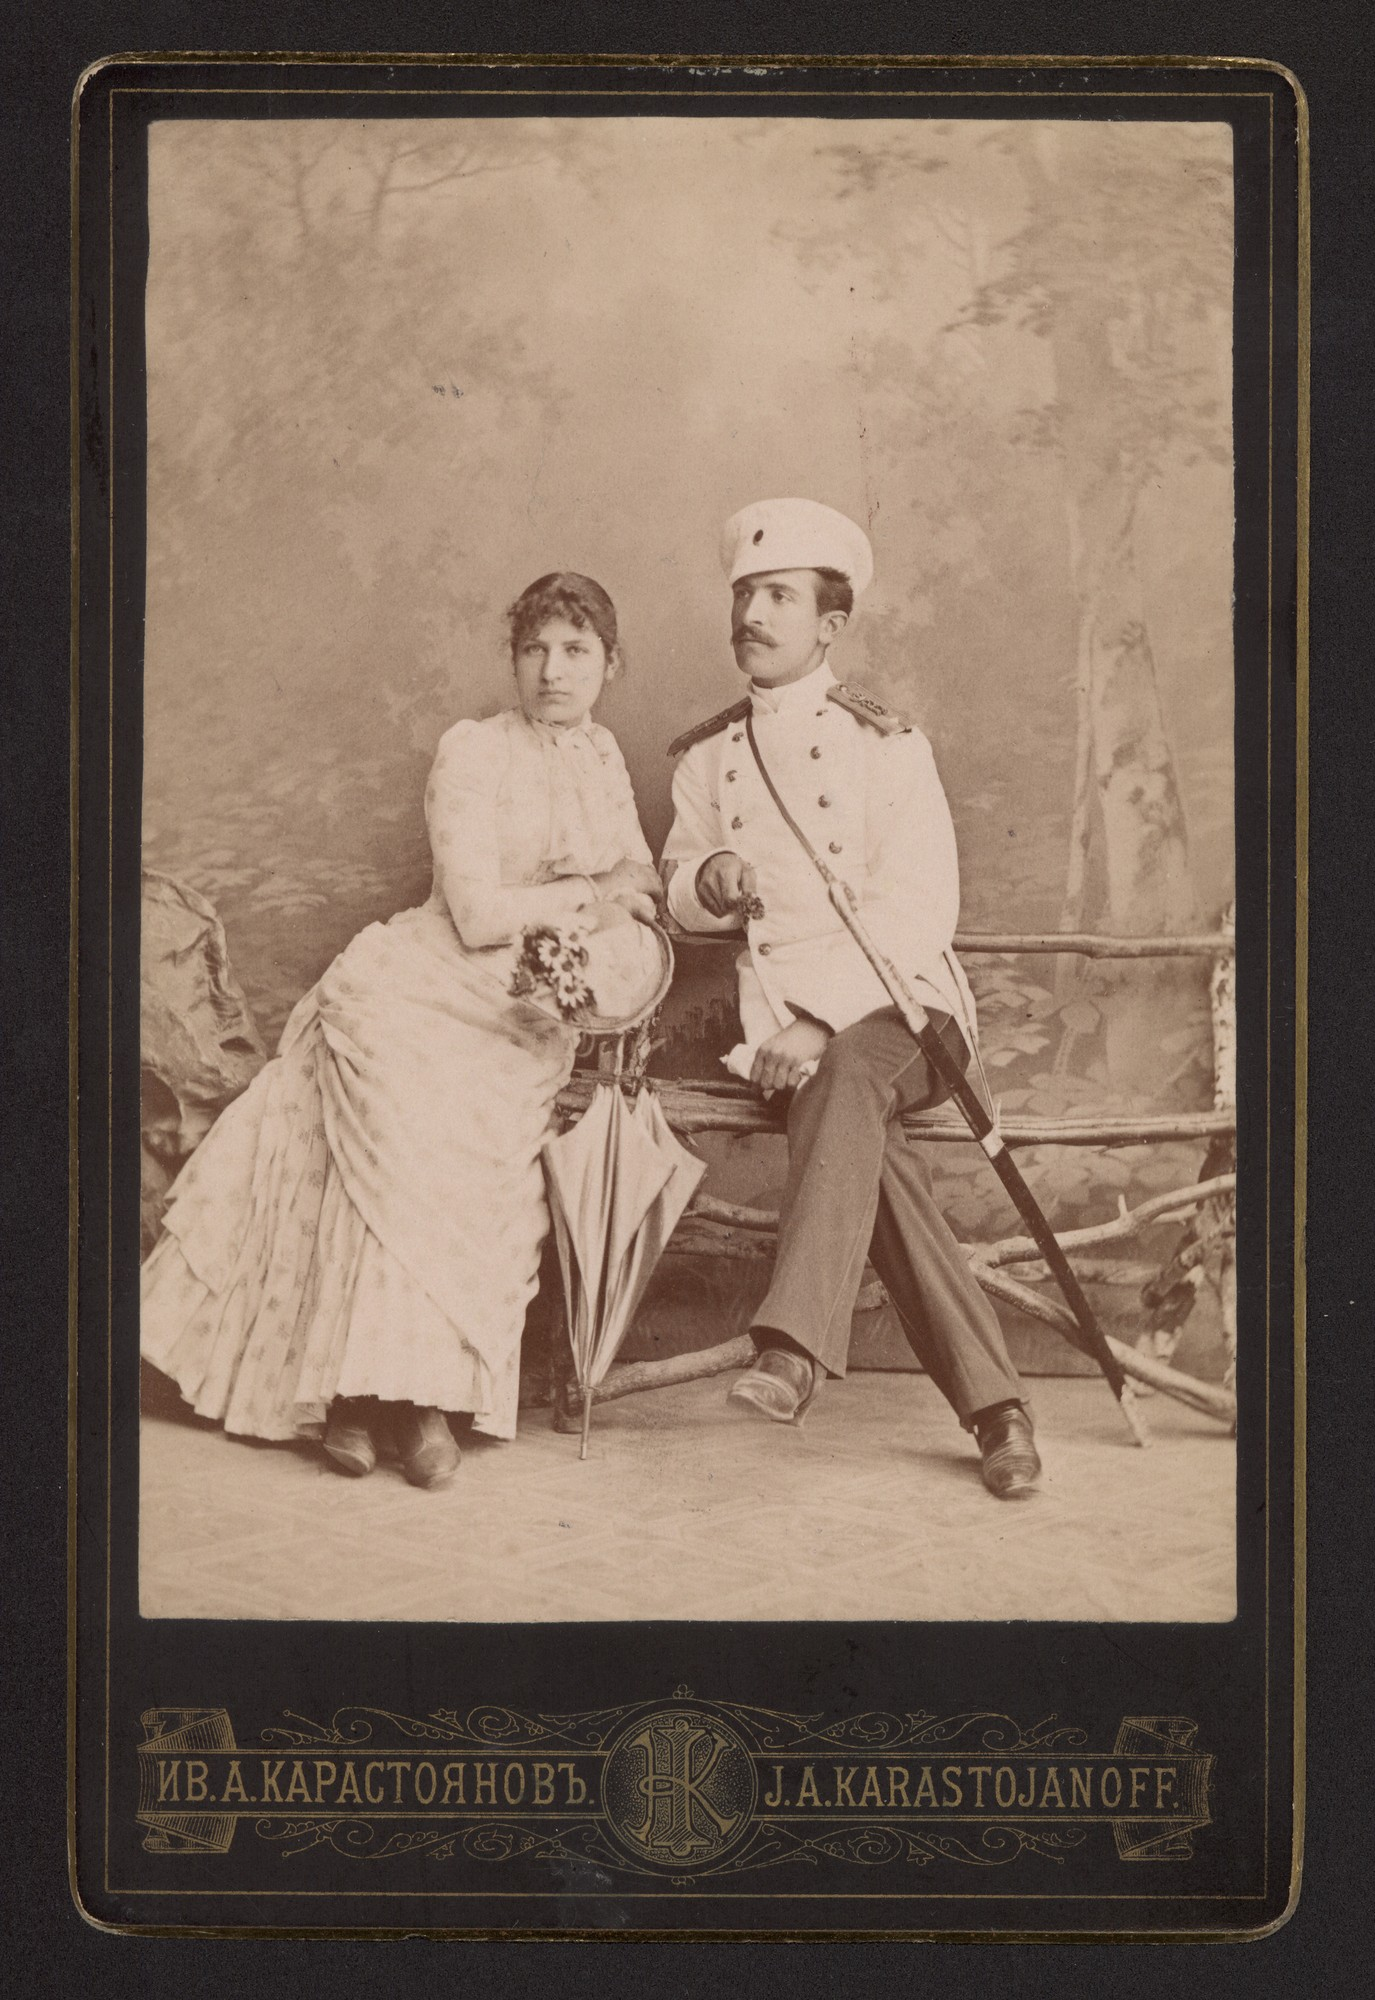 Studio portrait of Velika and Nikifor Nikiforovi, © Central State Archives